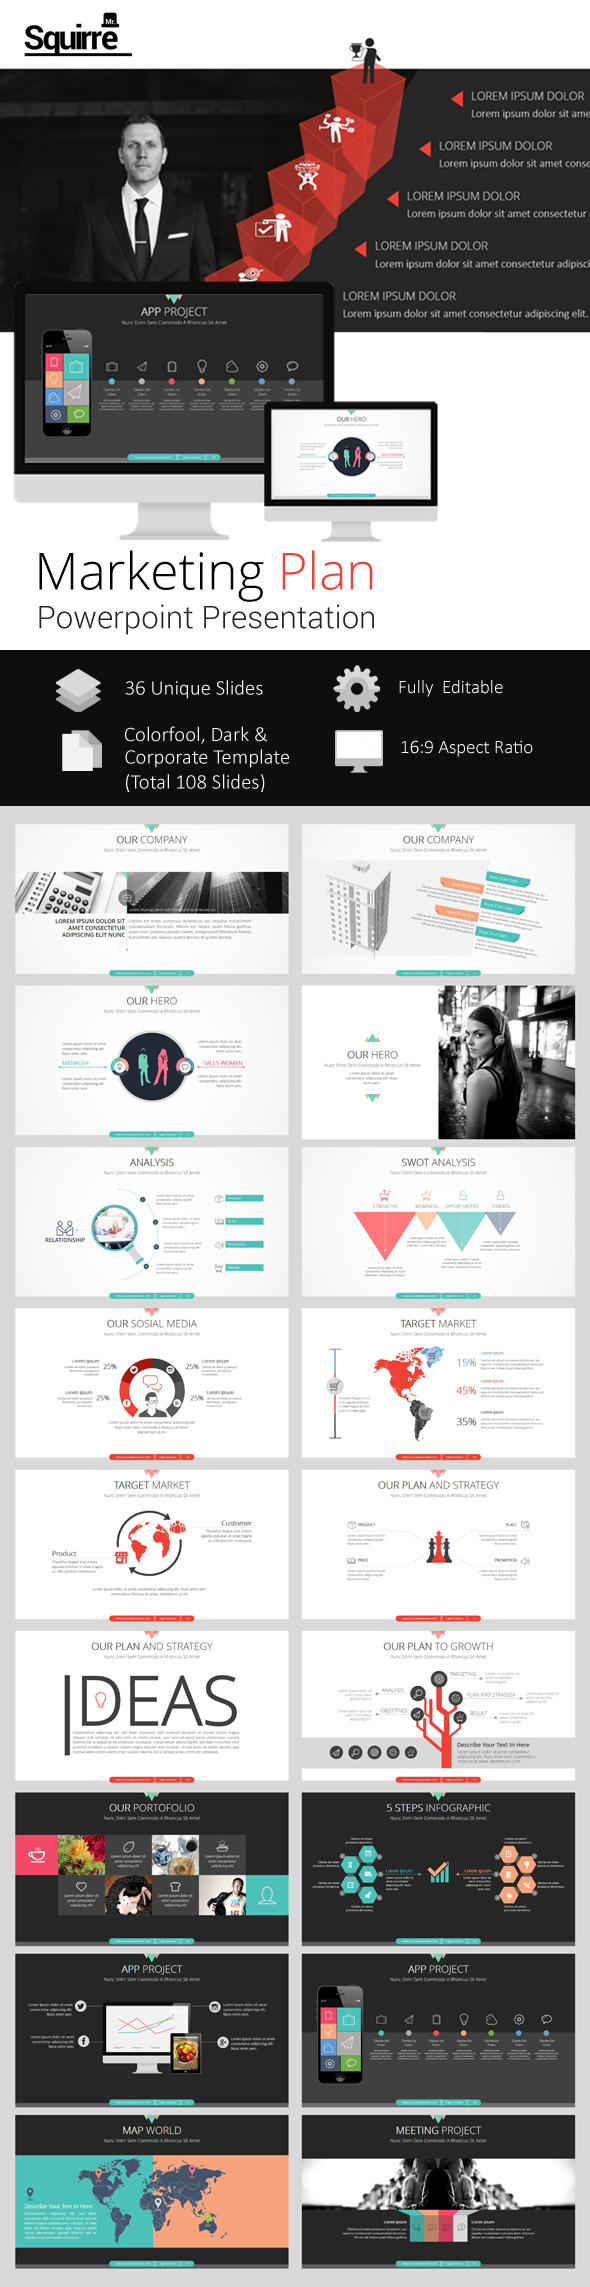 Marketing Plan Powerpoint Presentation - Pitch Deck PowerPoint Templates